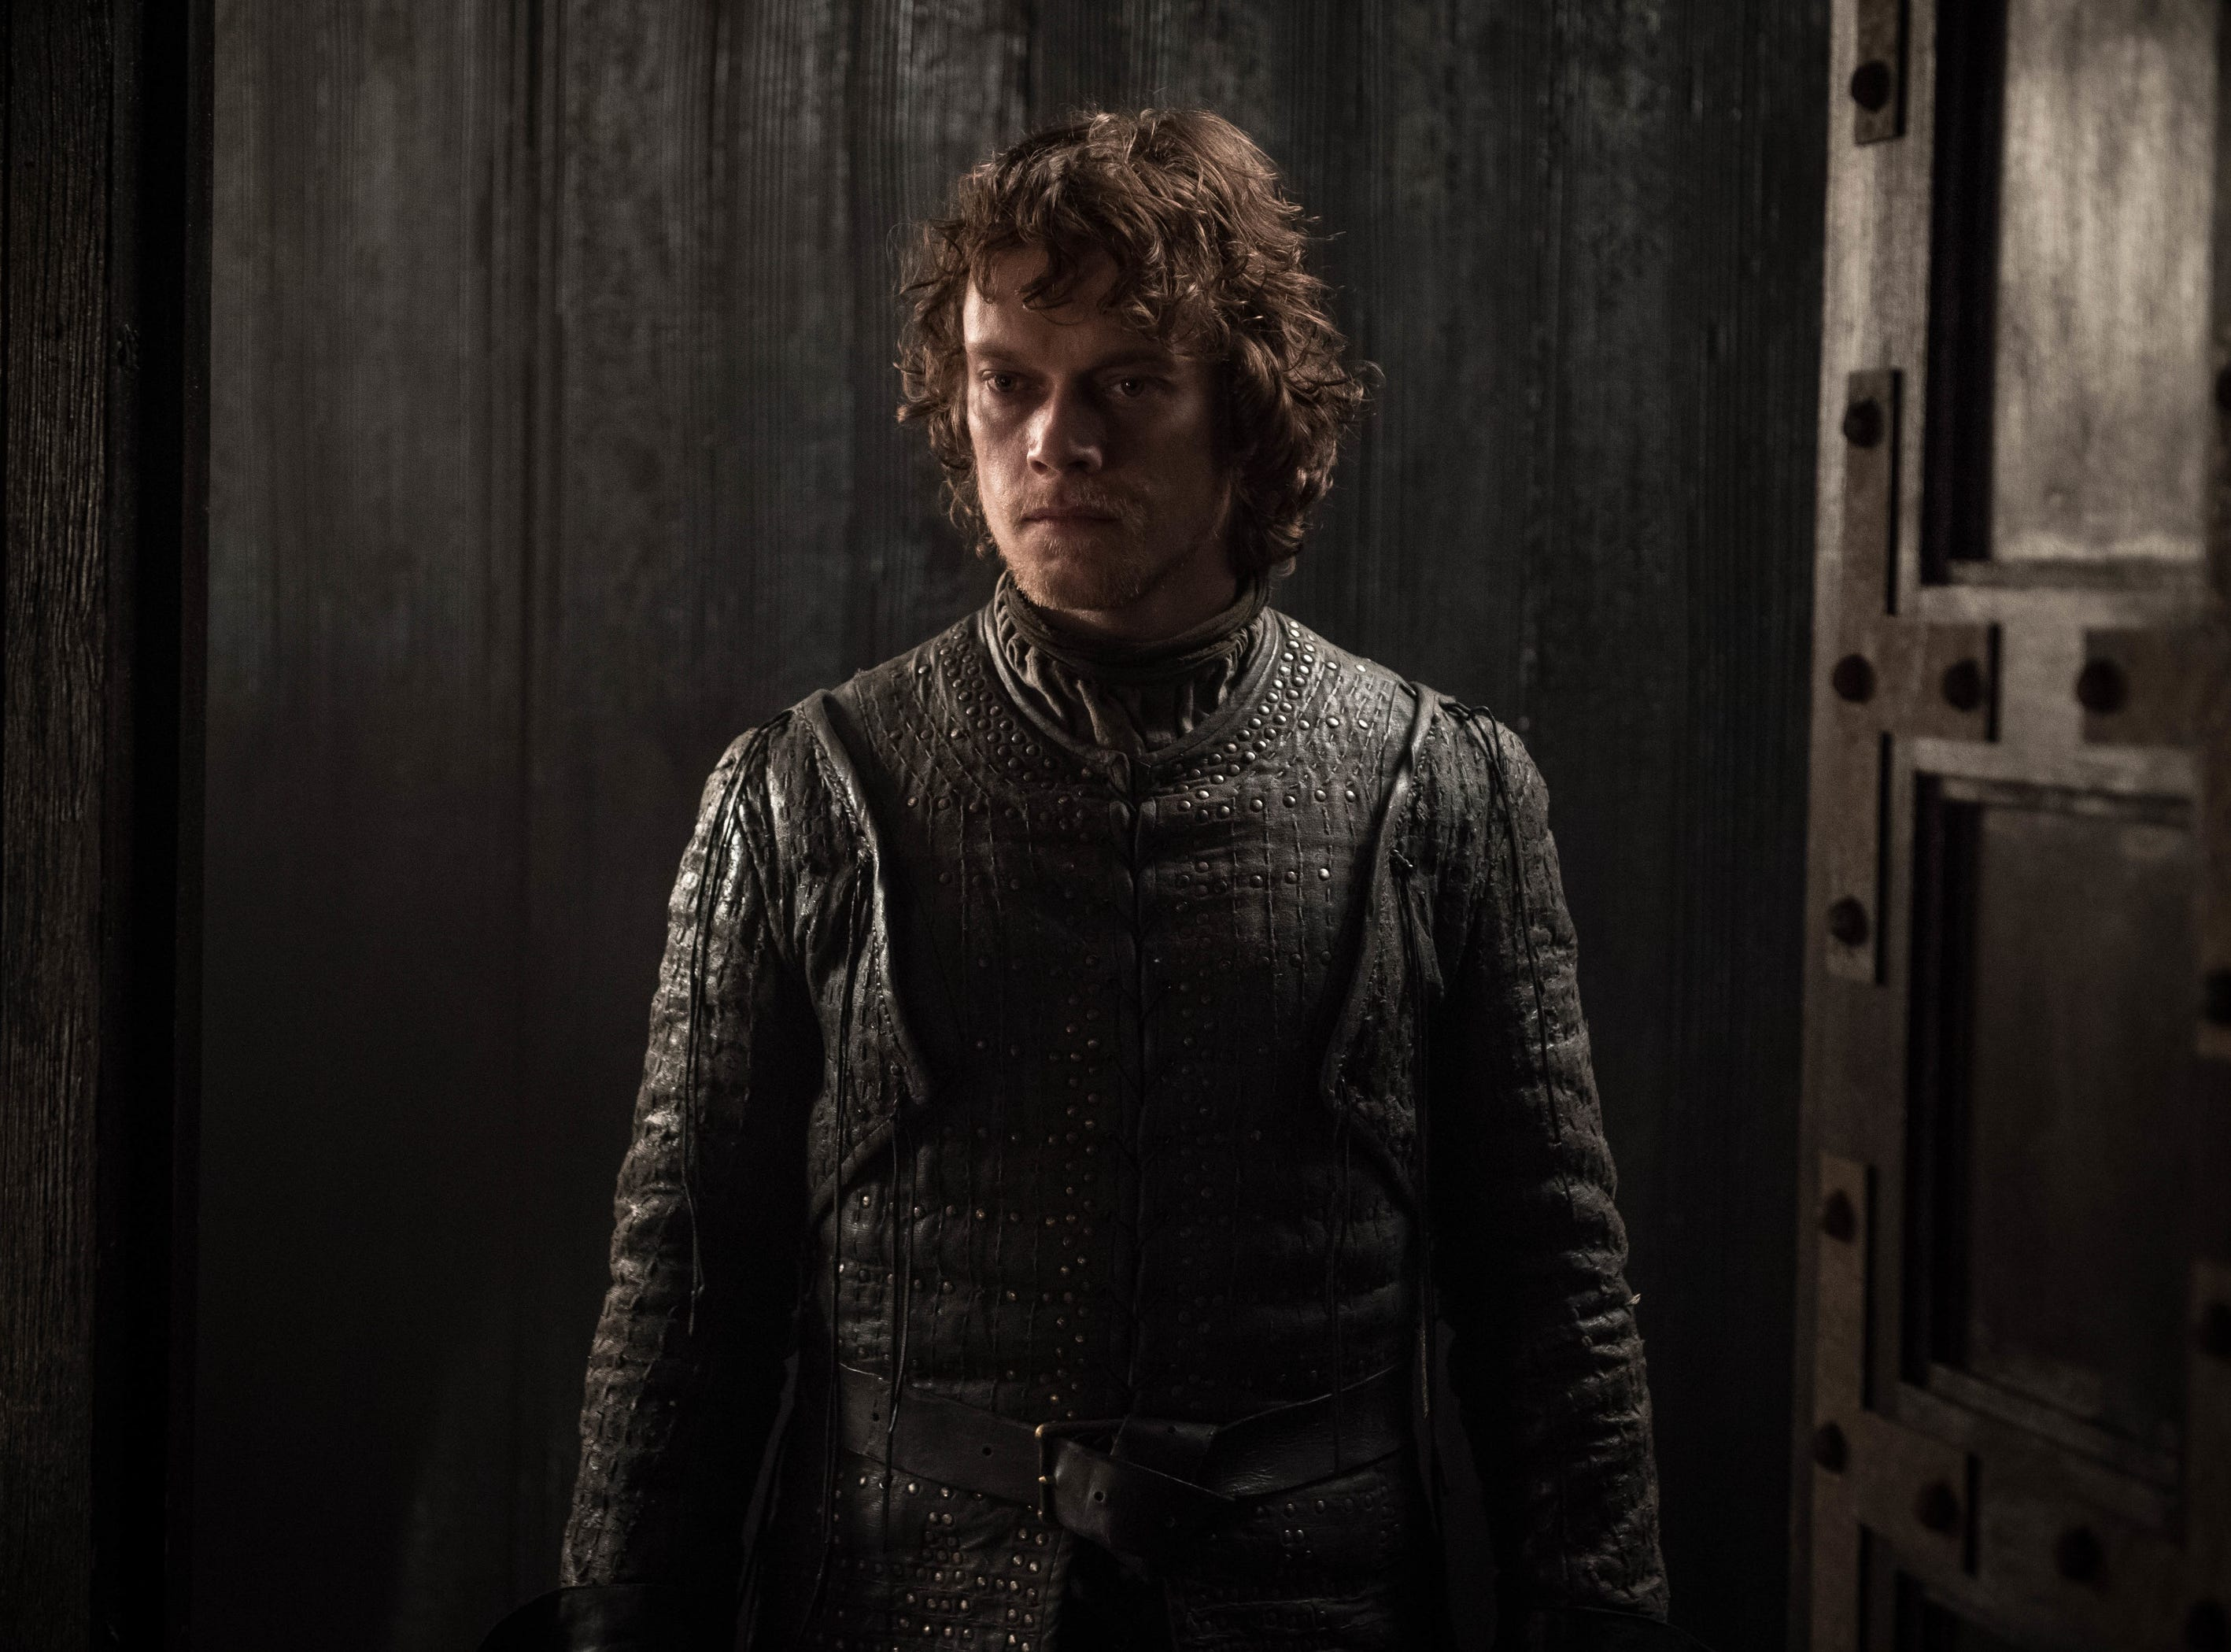 Theon Greyjoy (Alfie Allen) isn't happy.